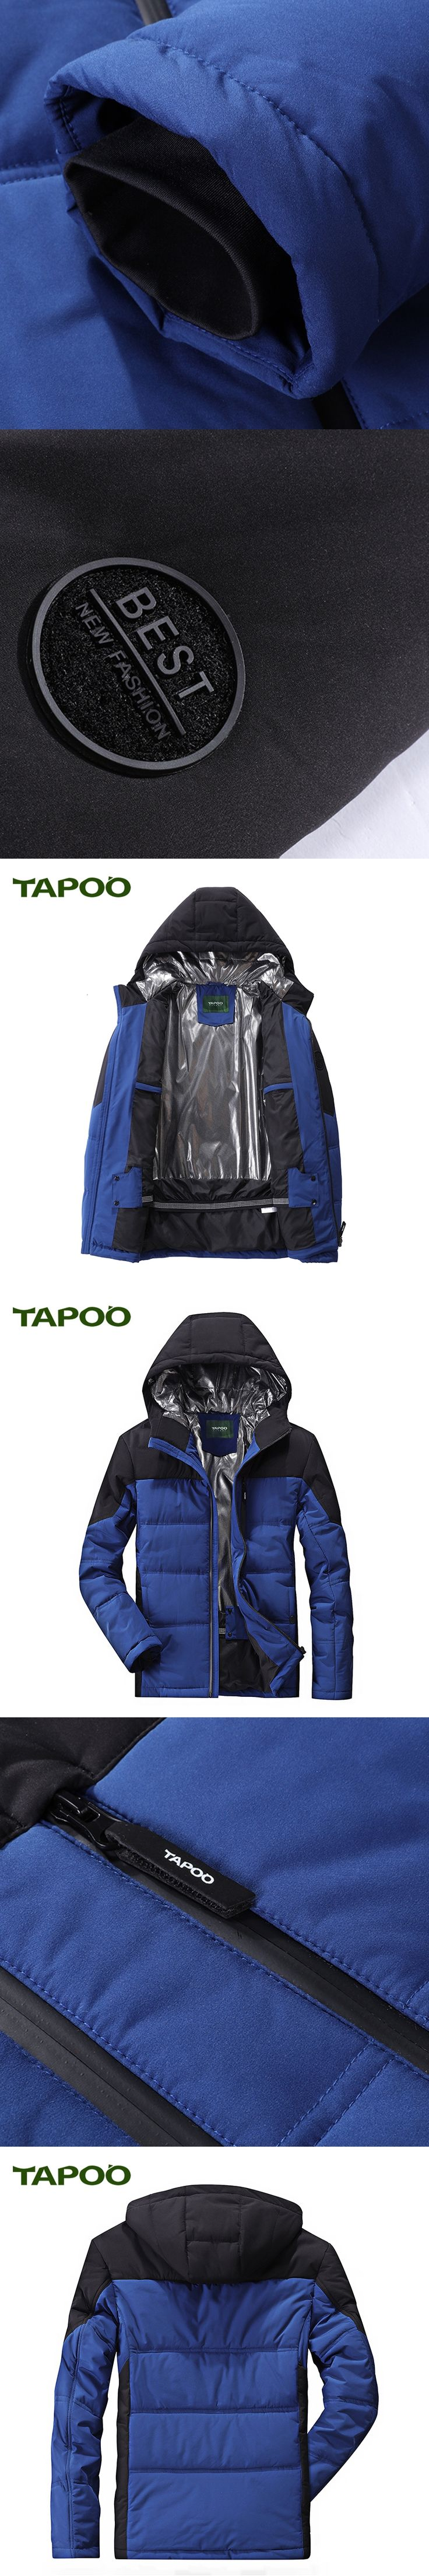 TAPOO 2017 Men's Coats Casual Hooded Men's Windbreaker Windproof Waterproof Brand Male Jackets